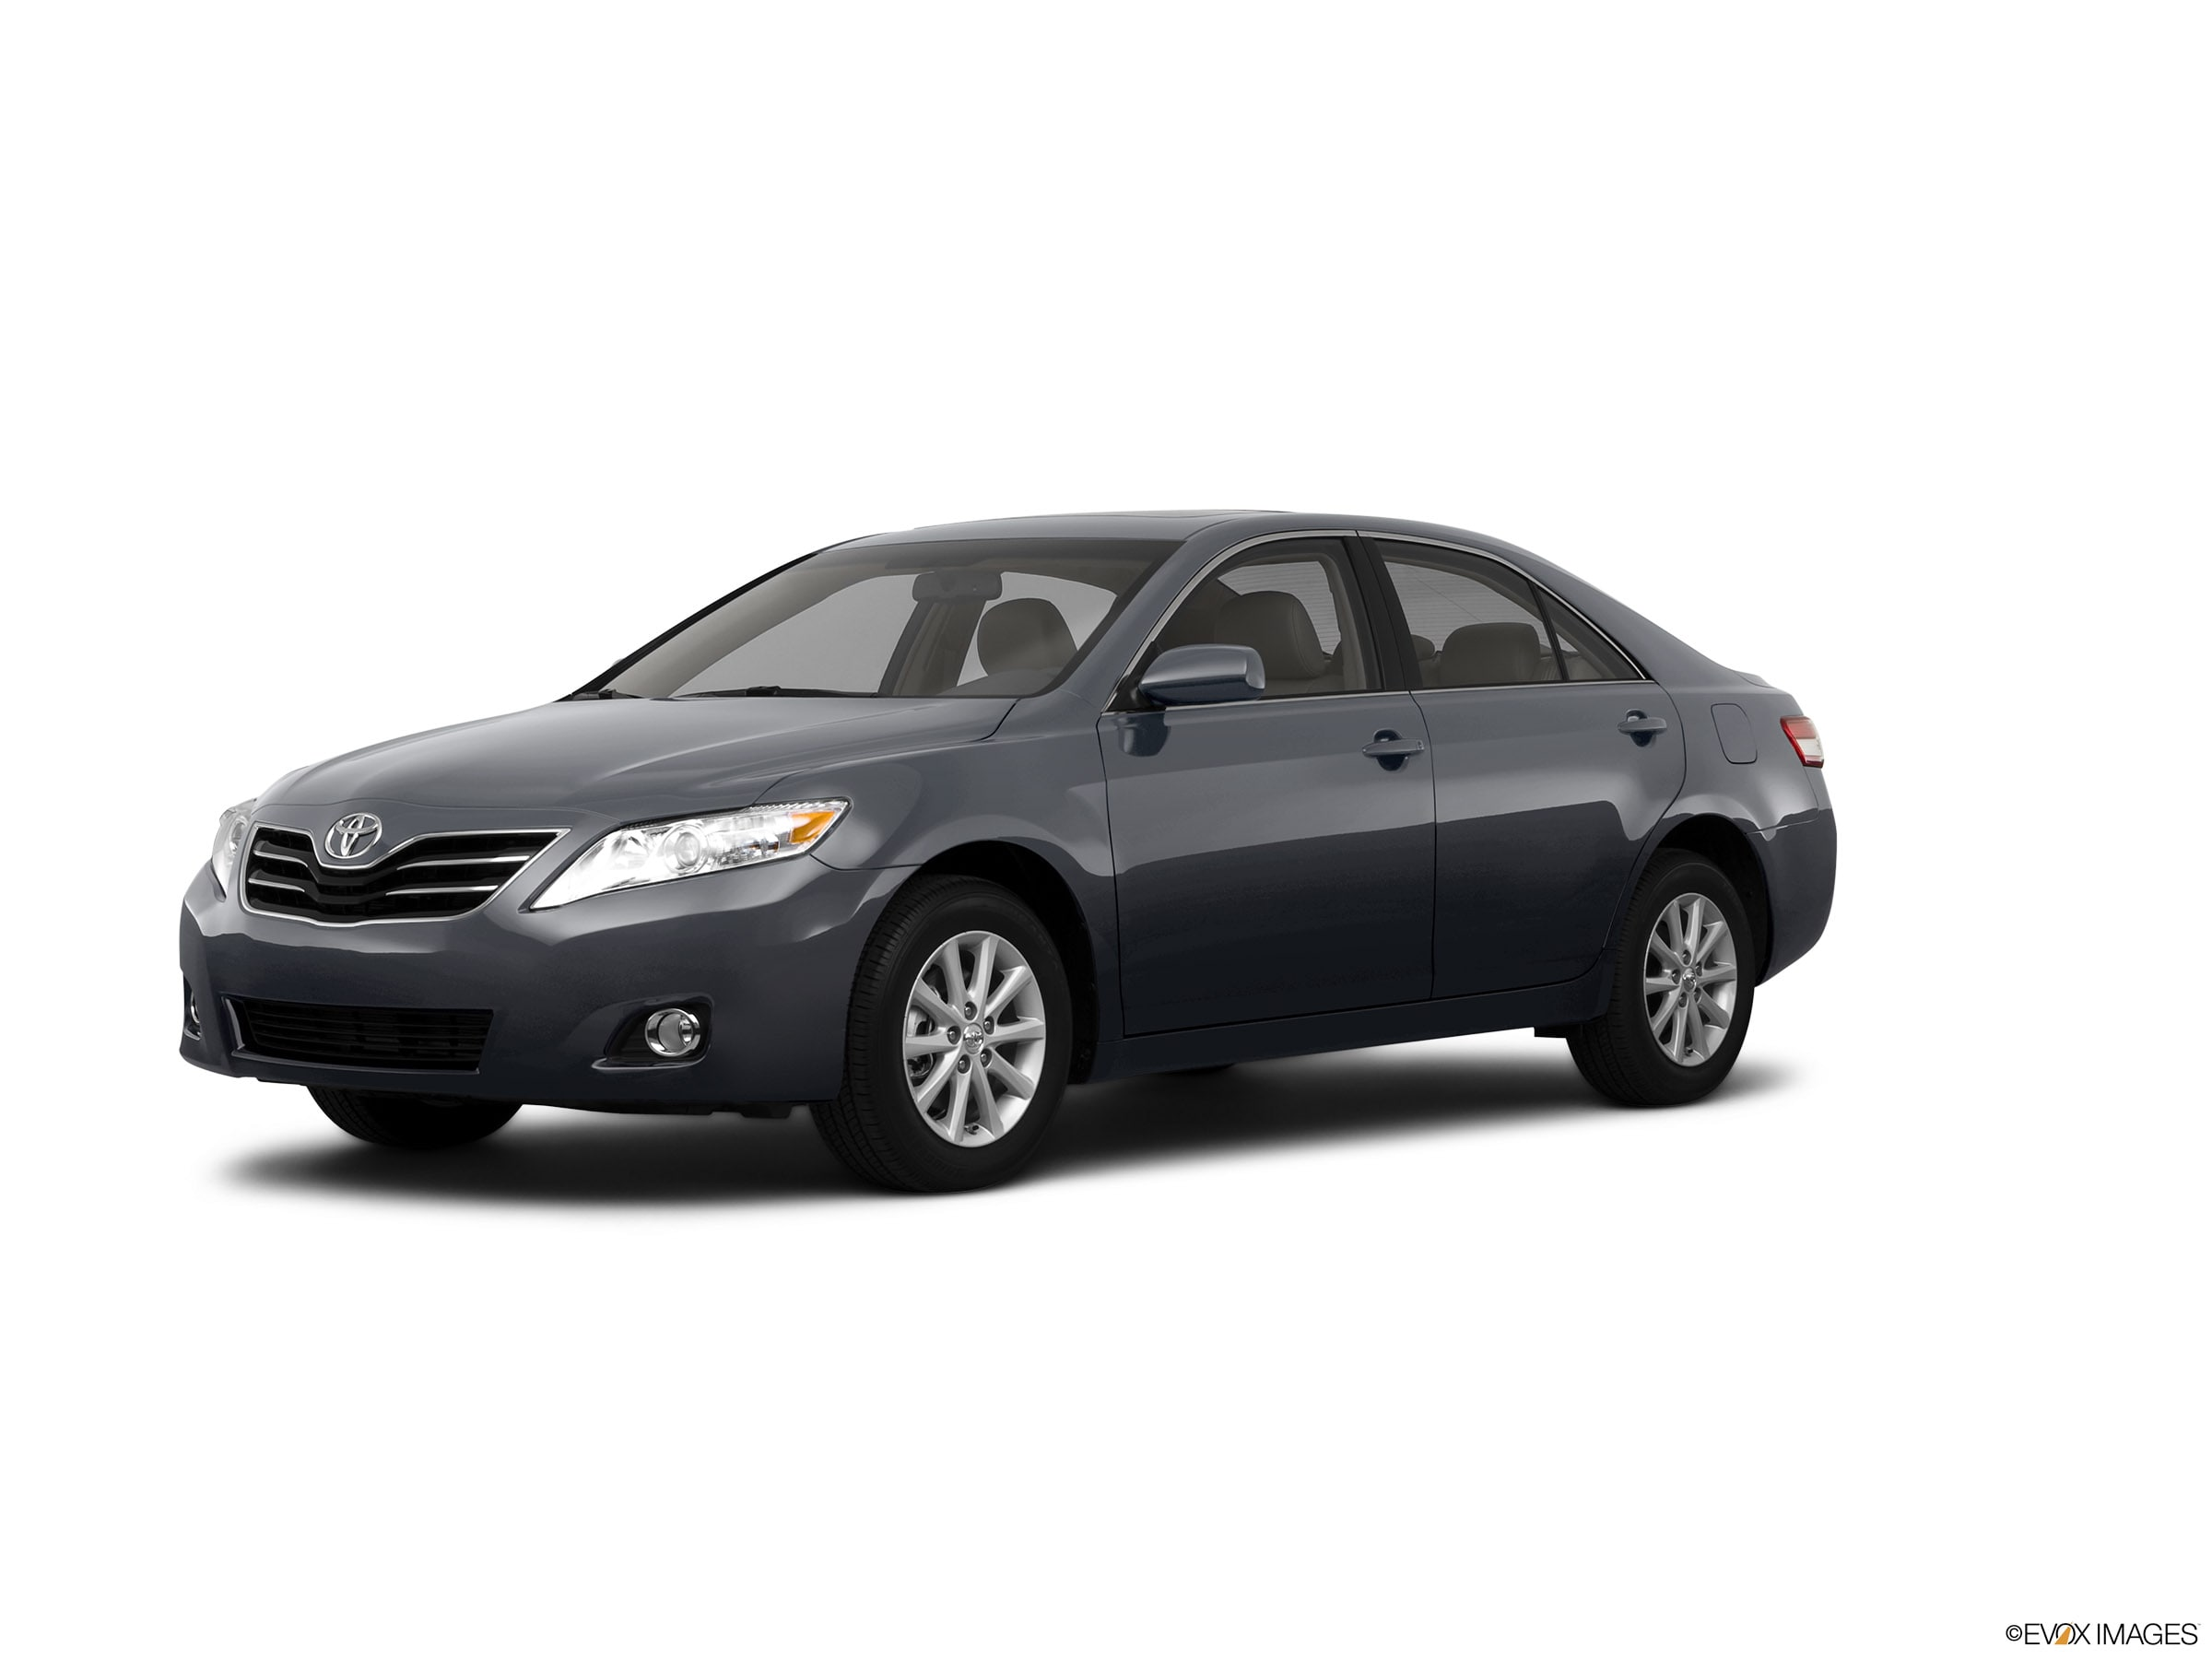 Used 2011 Toyota Camry XLE with VIN 4T4BF3EK0BR157043 for sale in Maplewood, Minnesota